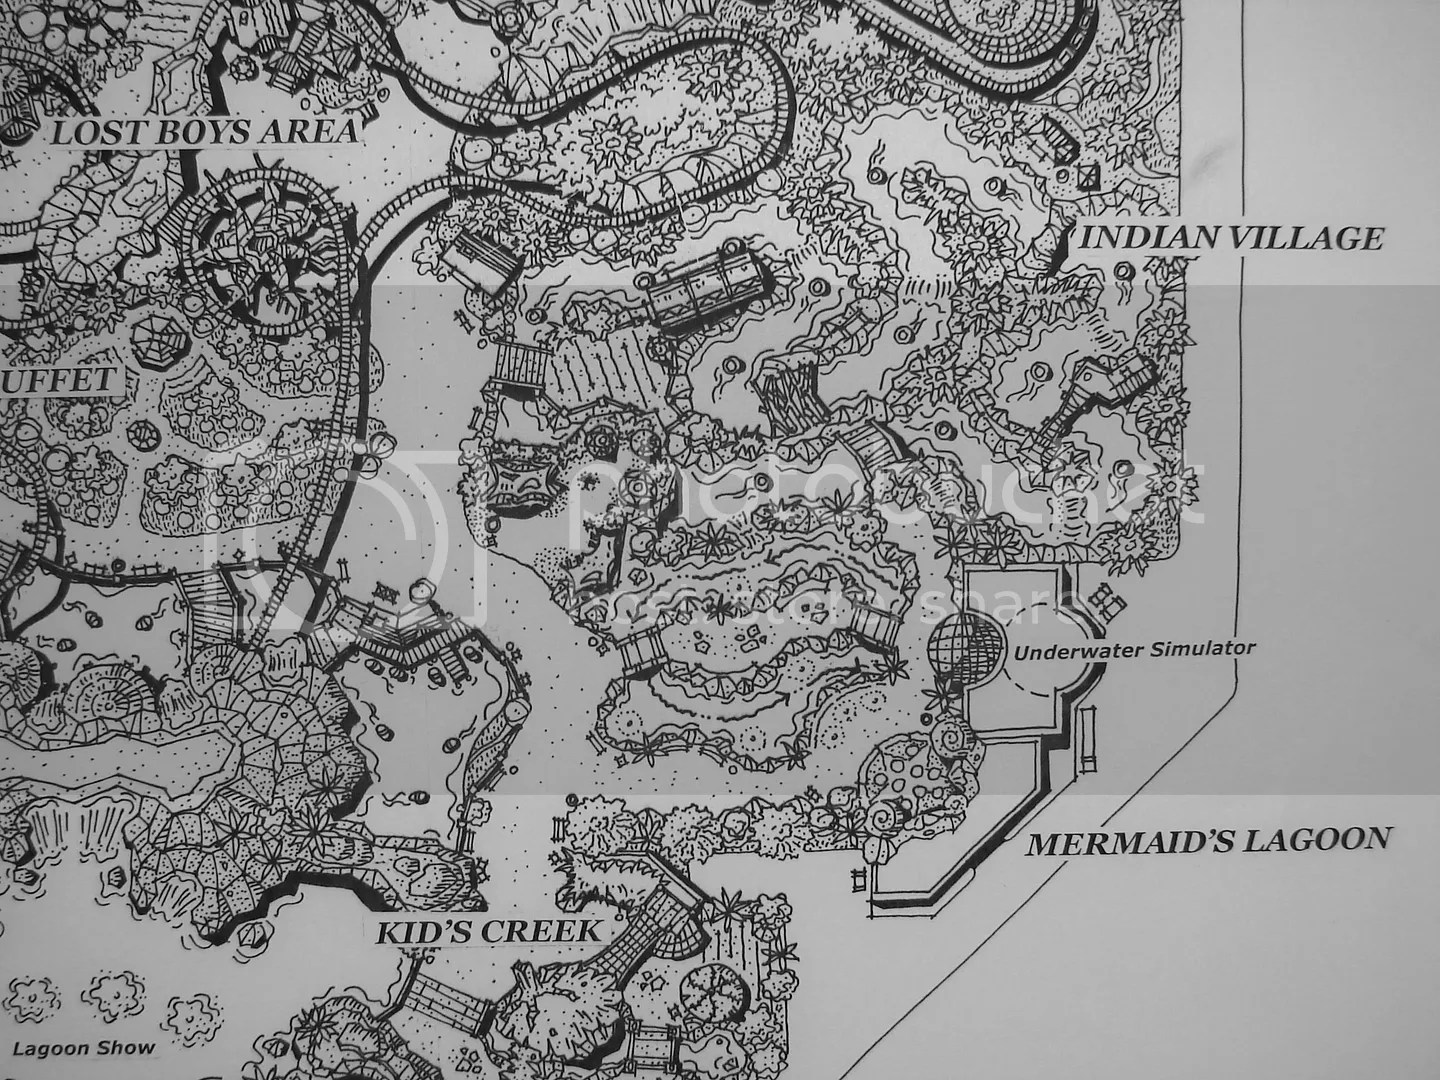 Peter Pans Neverland Was Not Designed To Be As Big Disneyland But It Certainly Would Have Been A Great Theme Park Where All The Living On